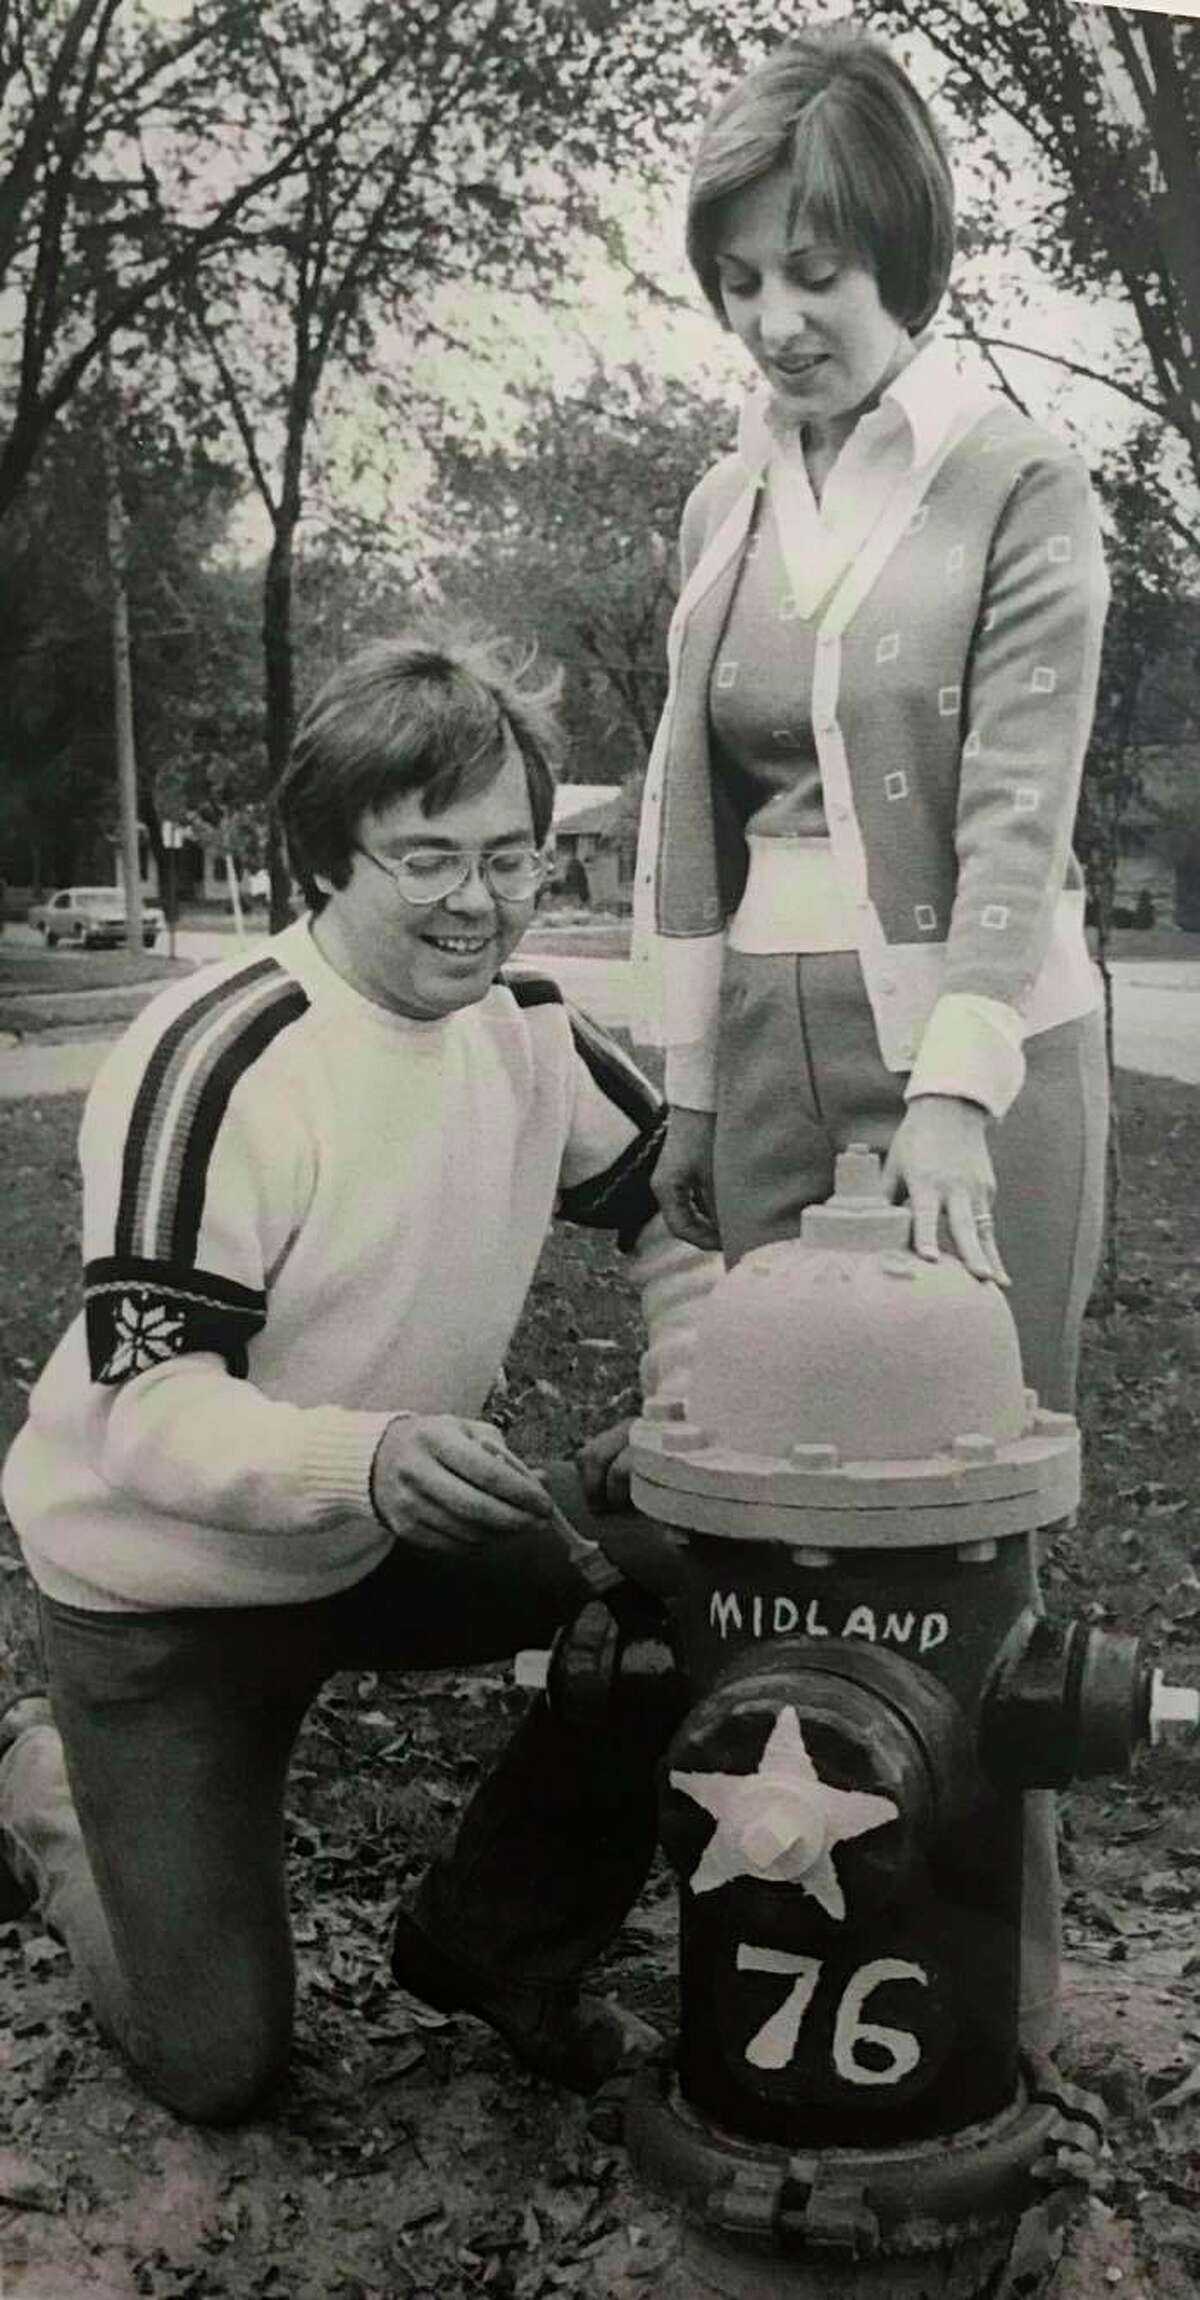 Stephen J. Engelken, administrative assistant for the Midland Community Affairs Council, paints the first hydrant in advance of the Bicentennial Fire Hydrant Painting Contest sponsored by Women's Optimist League. Looking on is Leslie Causgrove, head of the league. October 1975